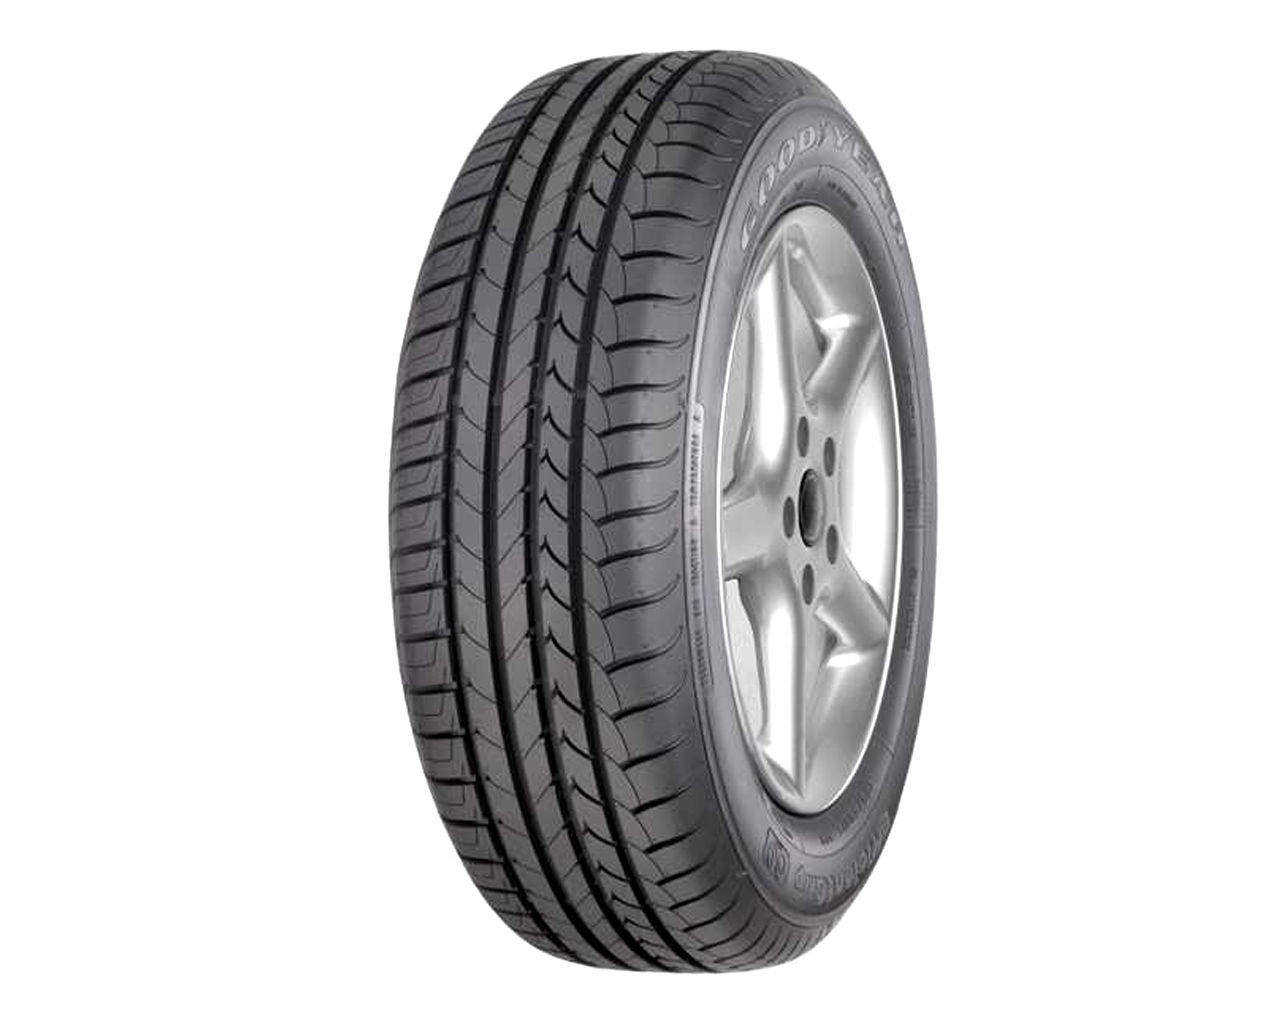 Goodyear EFFICIENTGRIP 195/65 R15 95H XL